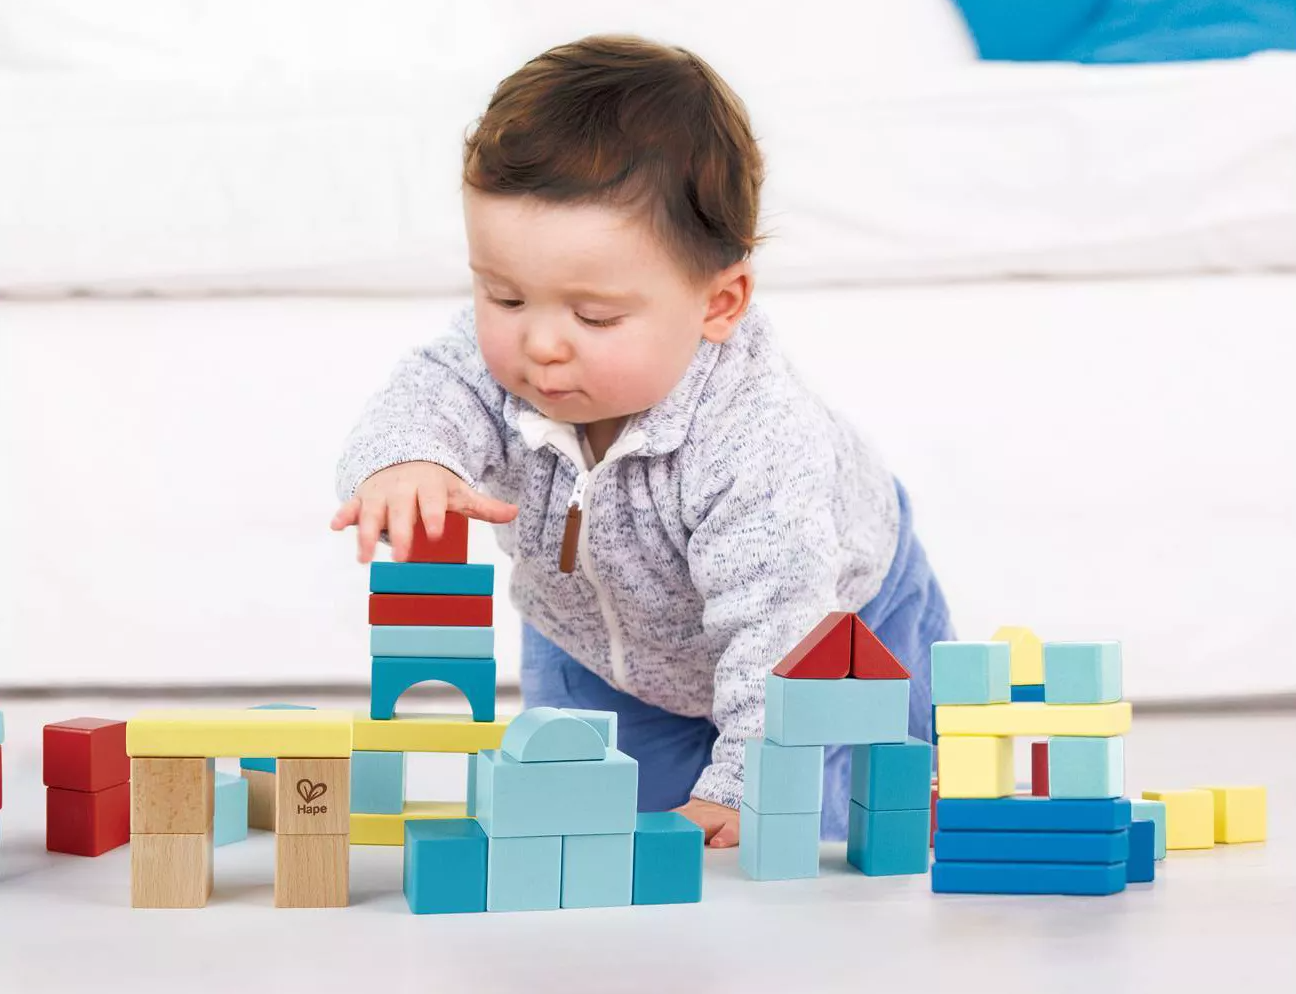 Child model playing with colorful building blocks